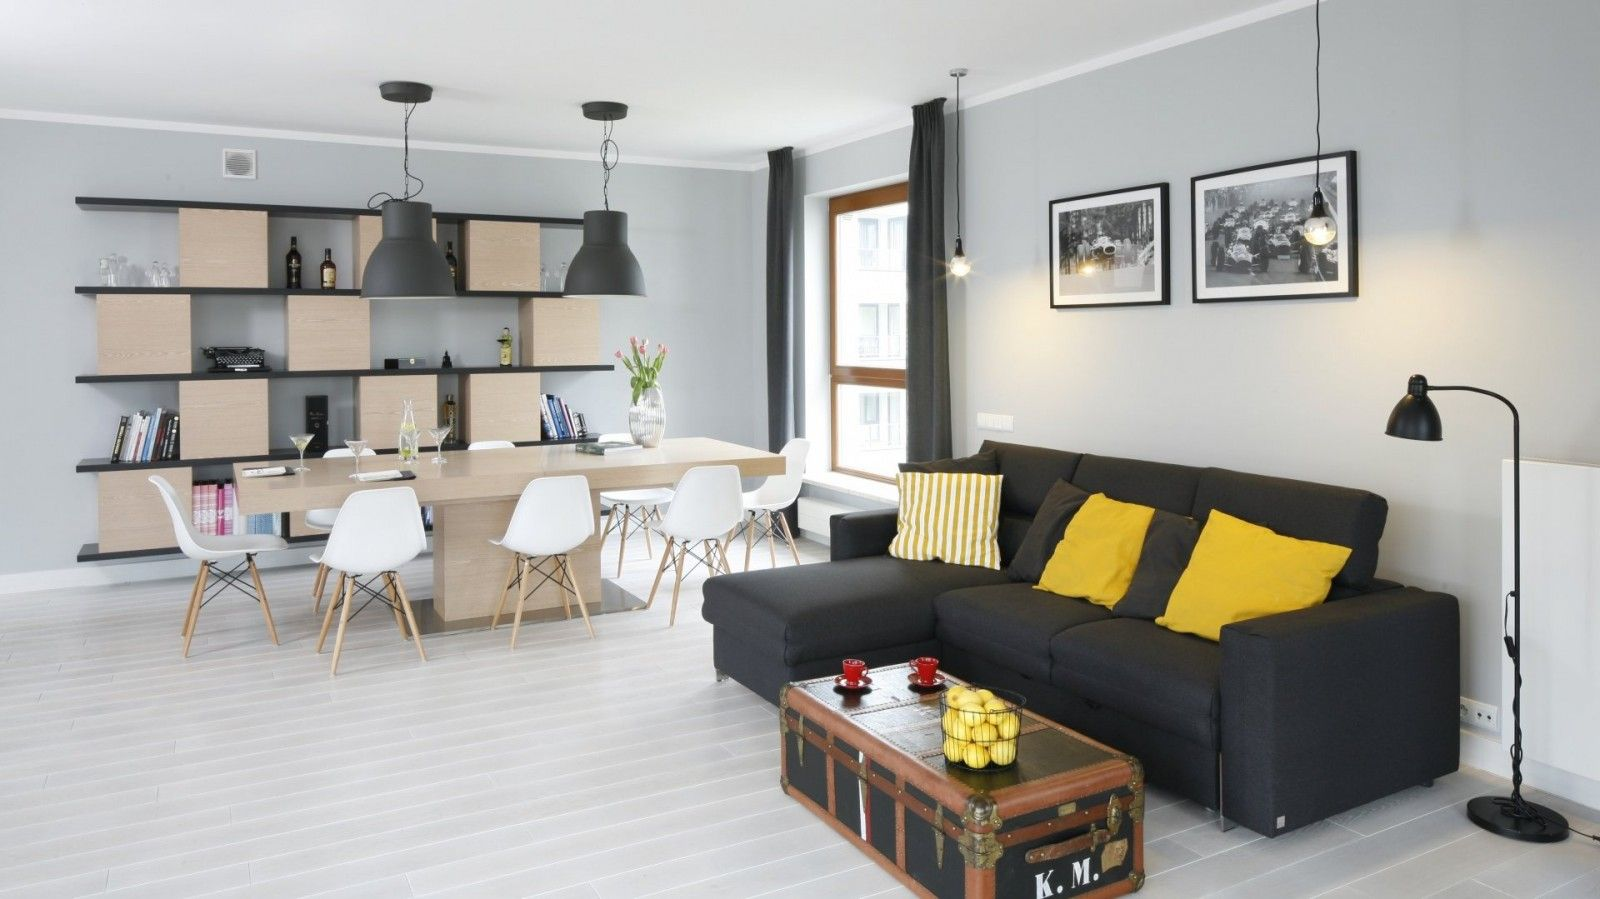 Black Sofa: Elegant and Original Design for Flawless Interior. Yellow cushions as the accent in the open space living